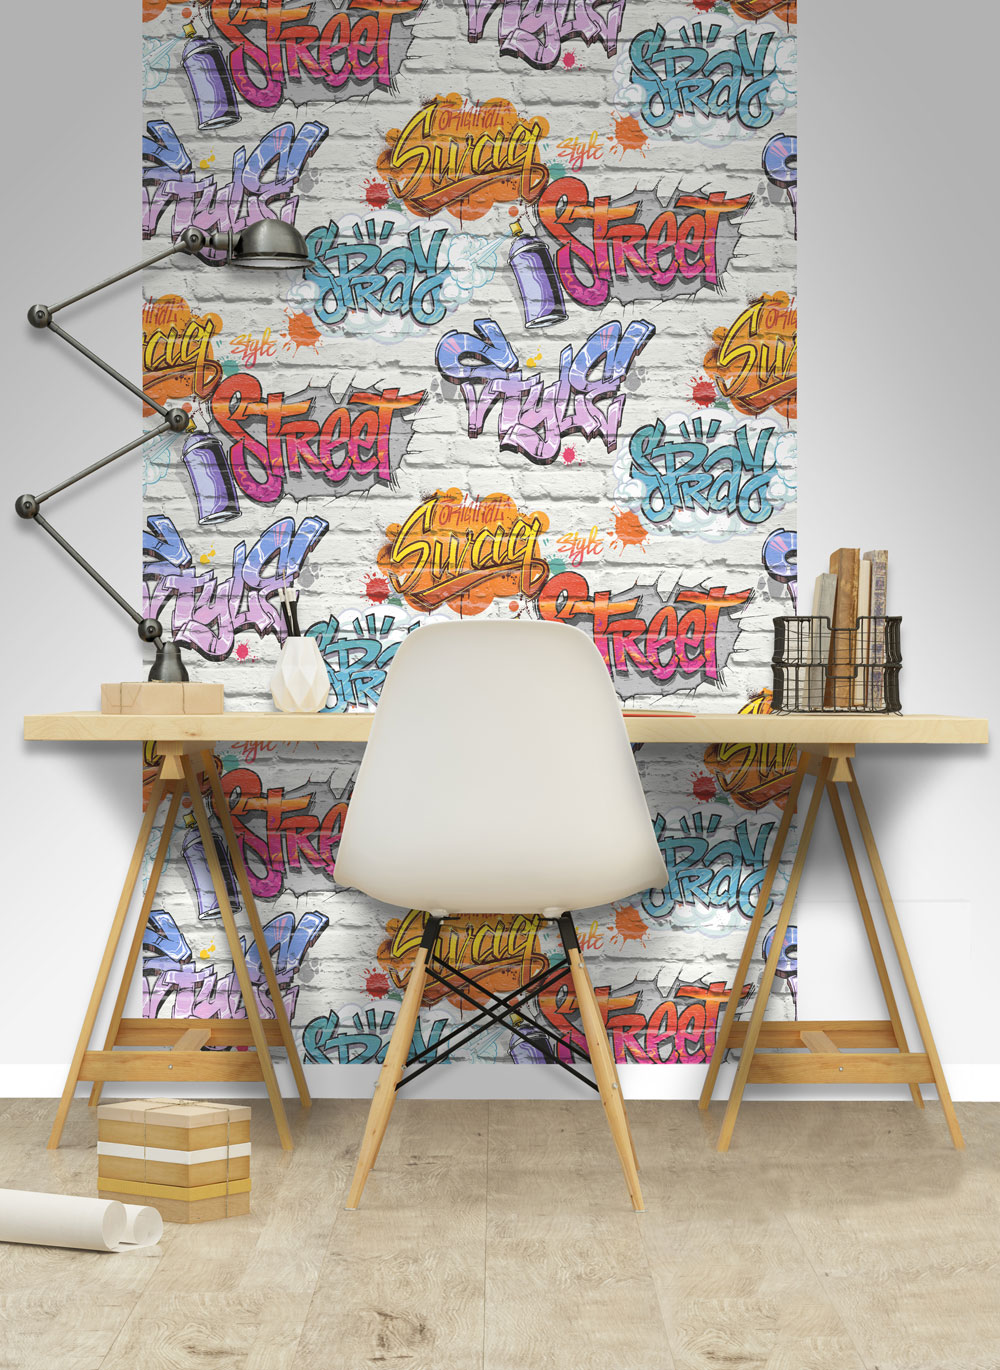 Graffiti Tag Wallpaper - White - by Albany